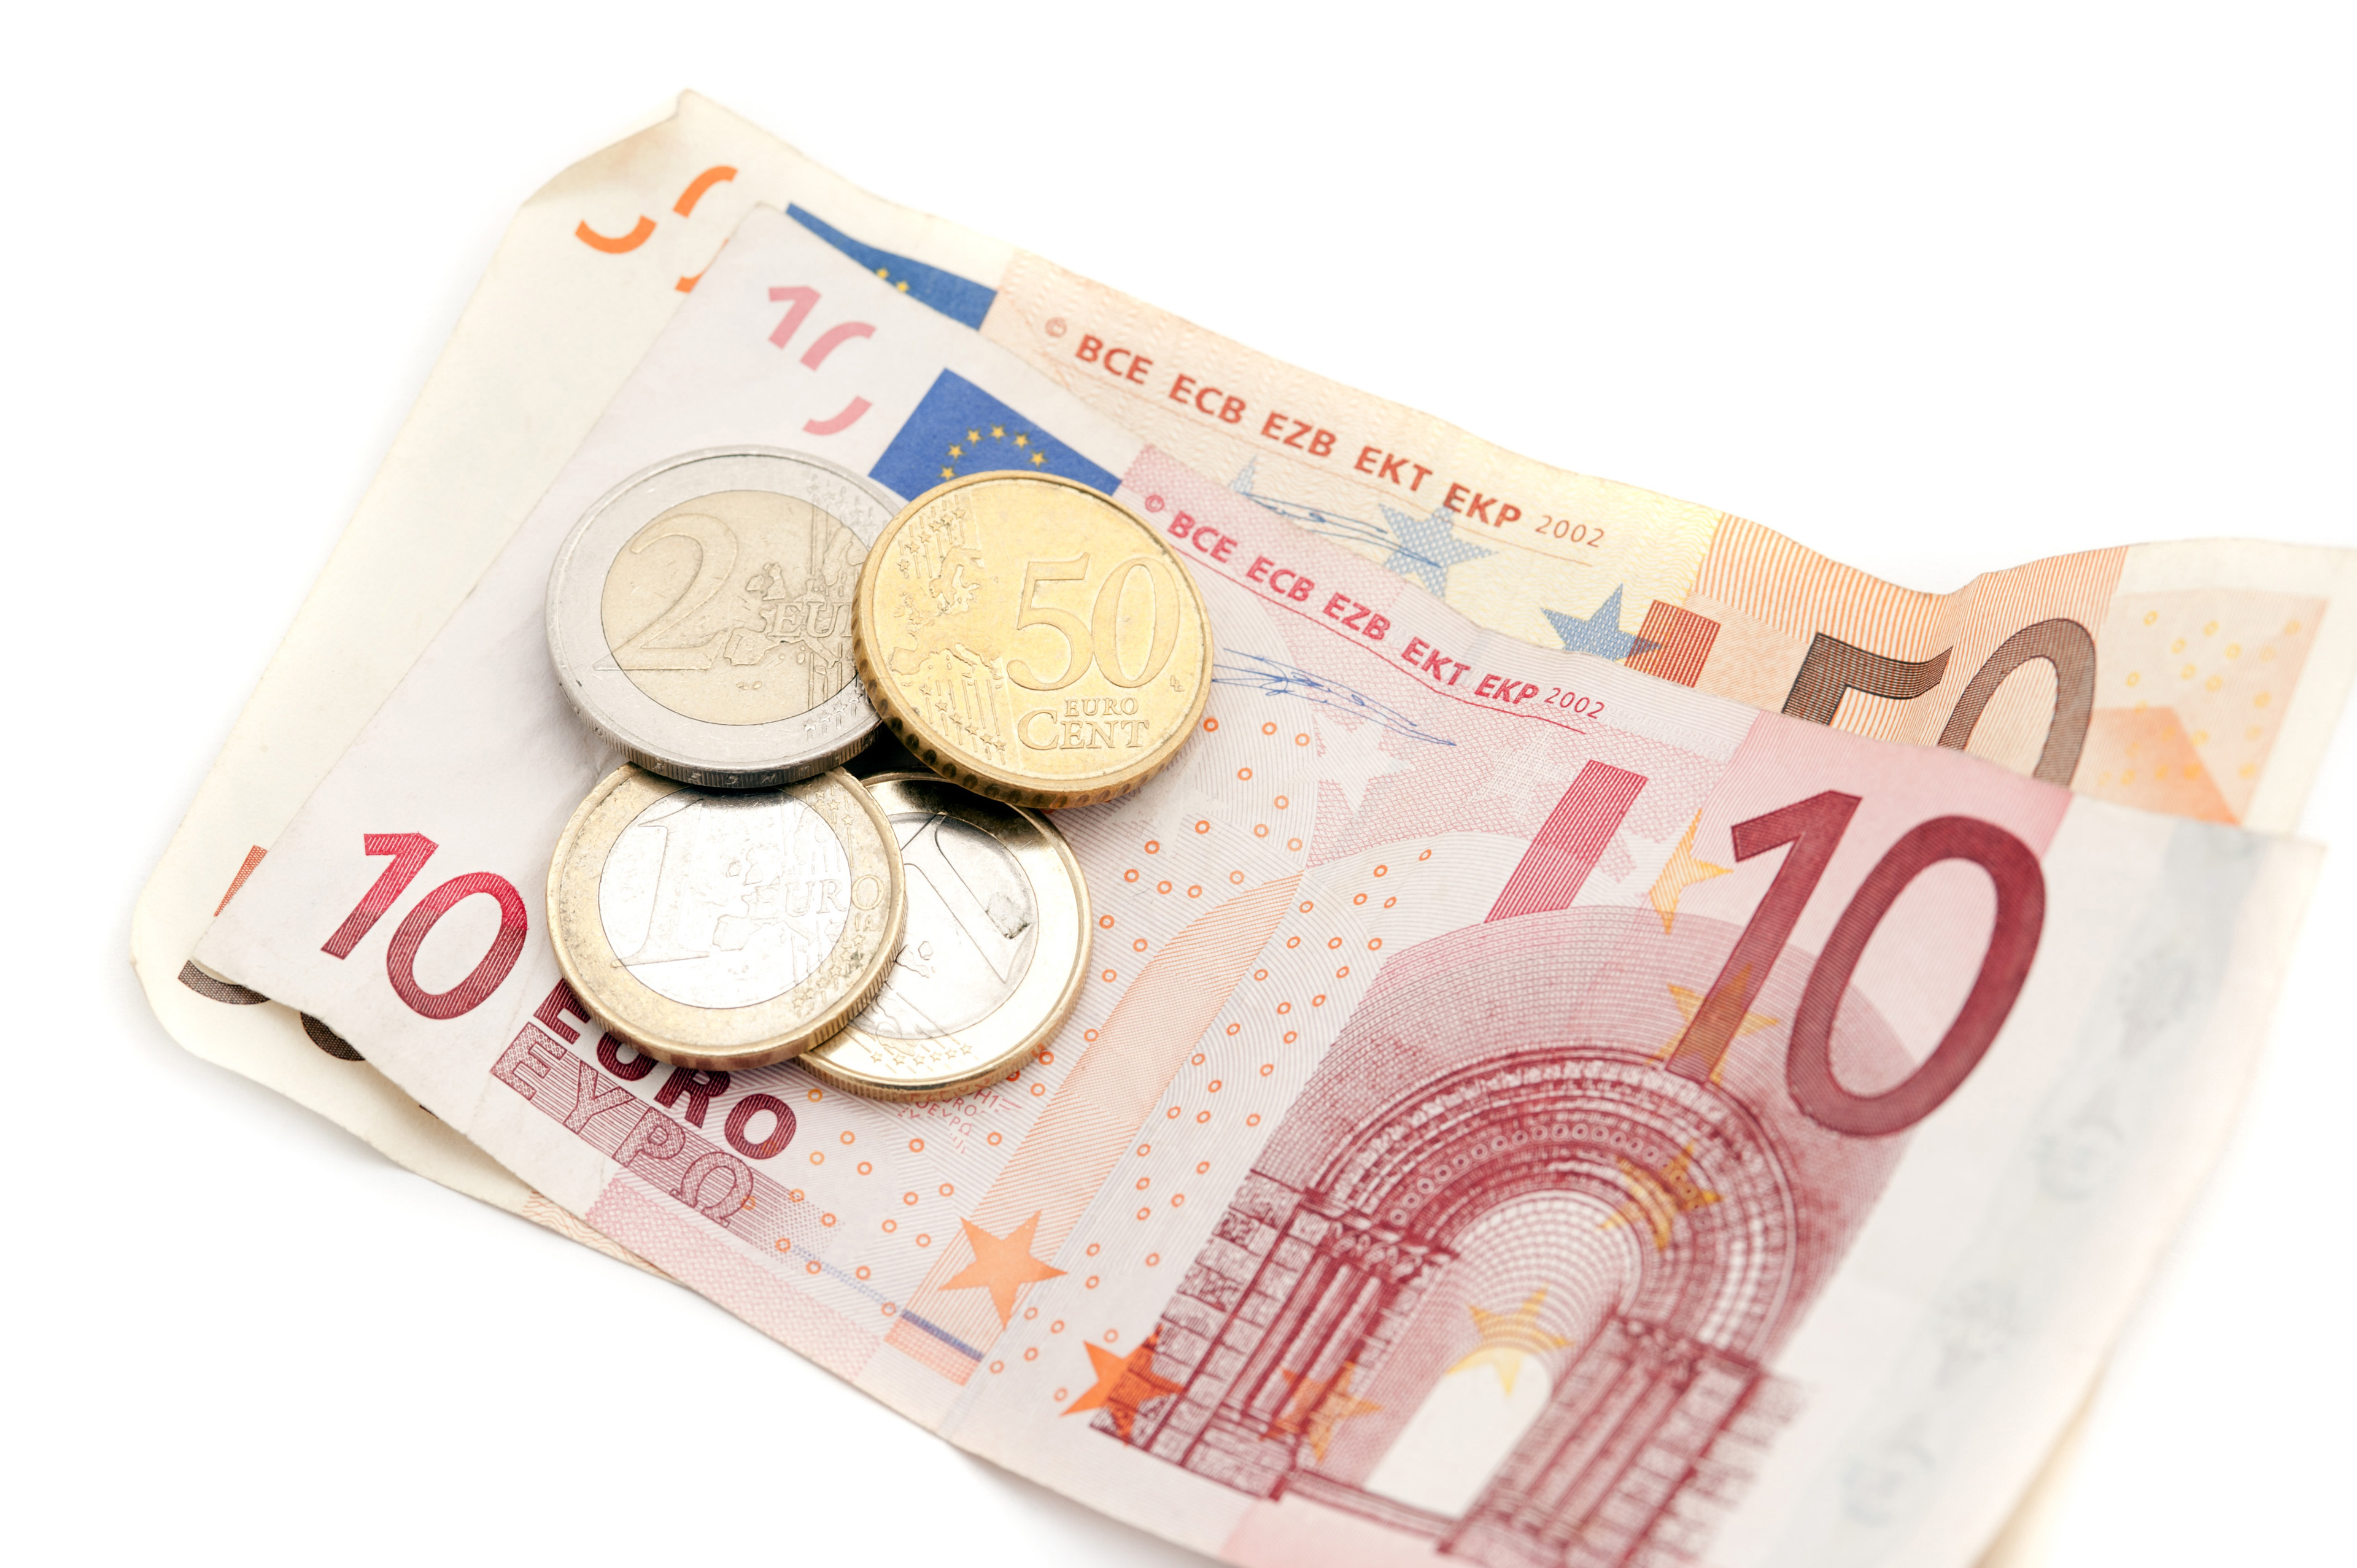 Euro 10 and 50 euro banknotes and coins lying on top of each other over a white background in a financial and currency concept